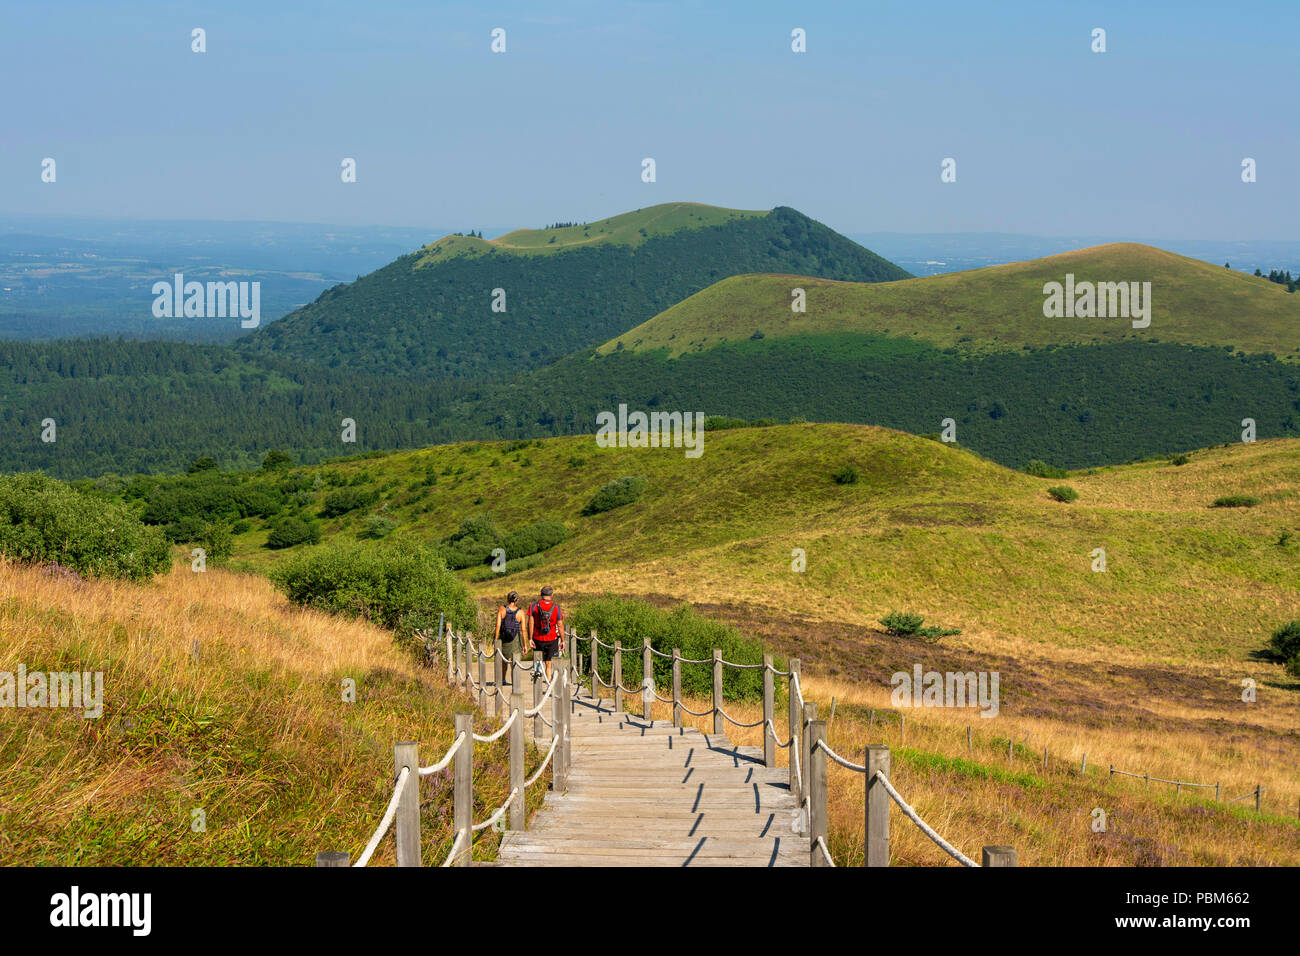 Hikers walking in regional natural park of Auvergne Volcanoes, Unesco World heritage, Puy de Dome depatment, Auvergne-Rhone-Alpes, France - Stock Image